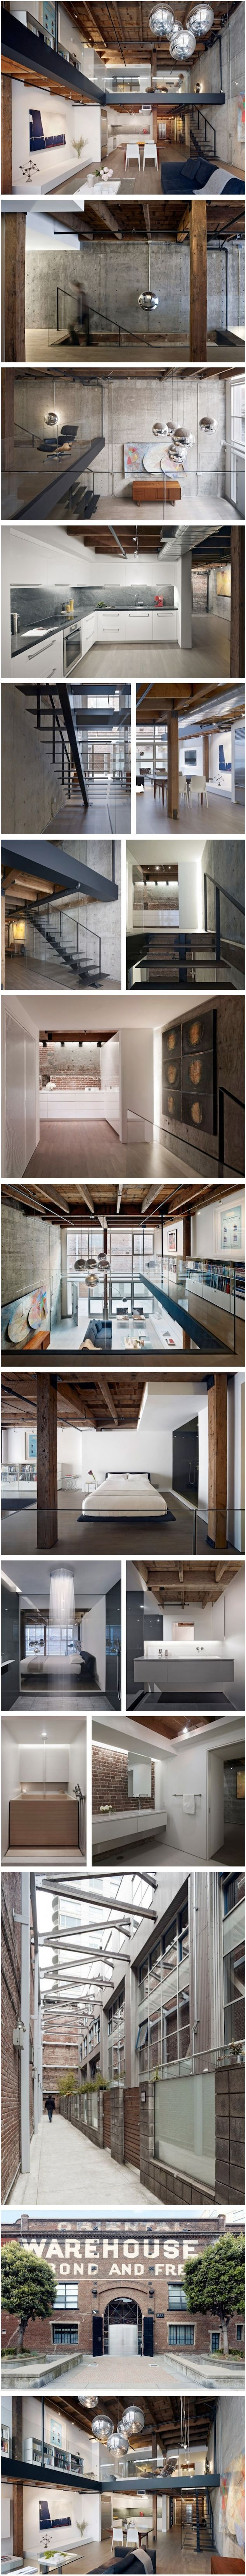 Interior design and architecture for a loft unit in San Francisco's Oriental Warehouse Building by EDMONDS + LEE ARCHITECTS. http://www.edmondslee.com/owl.html